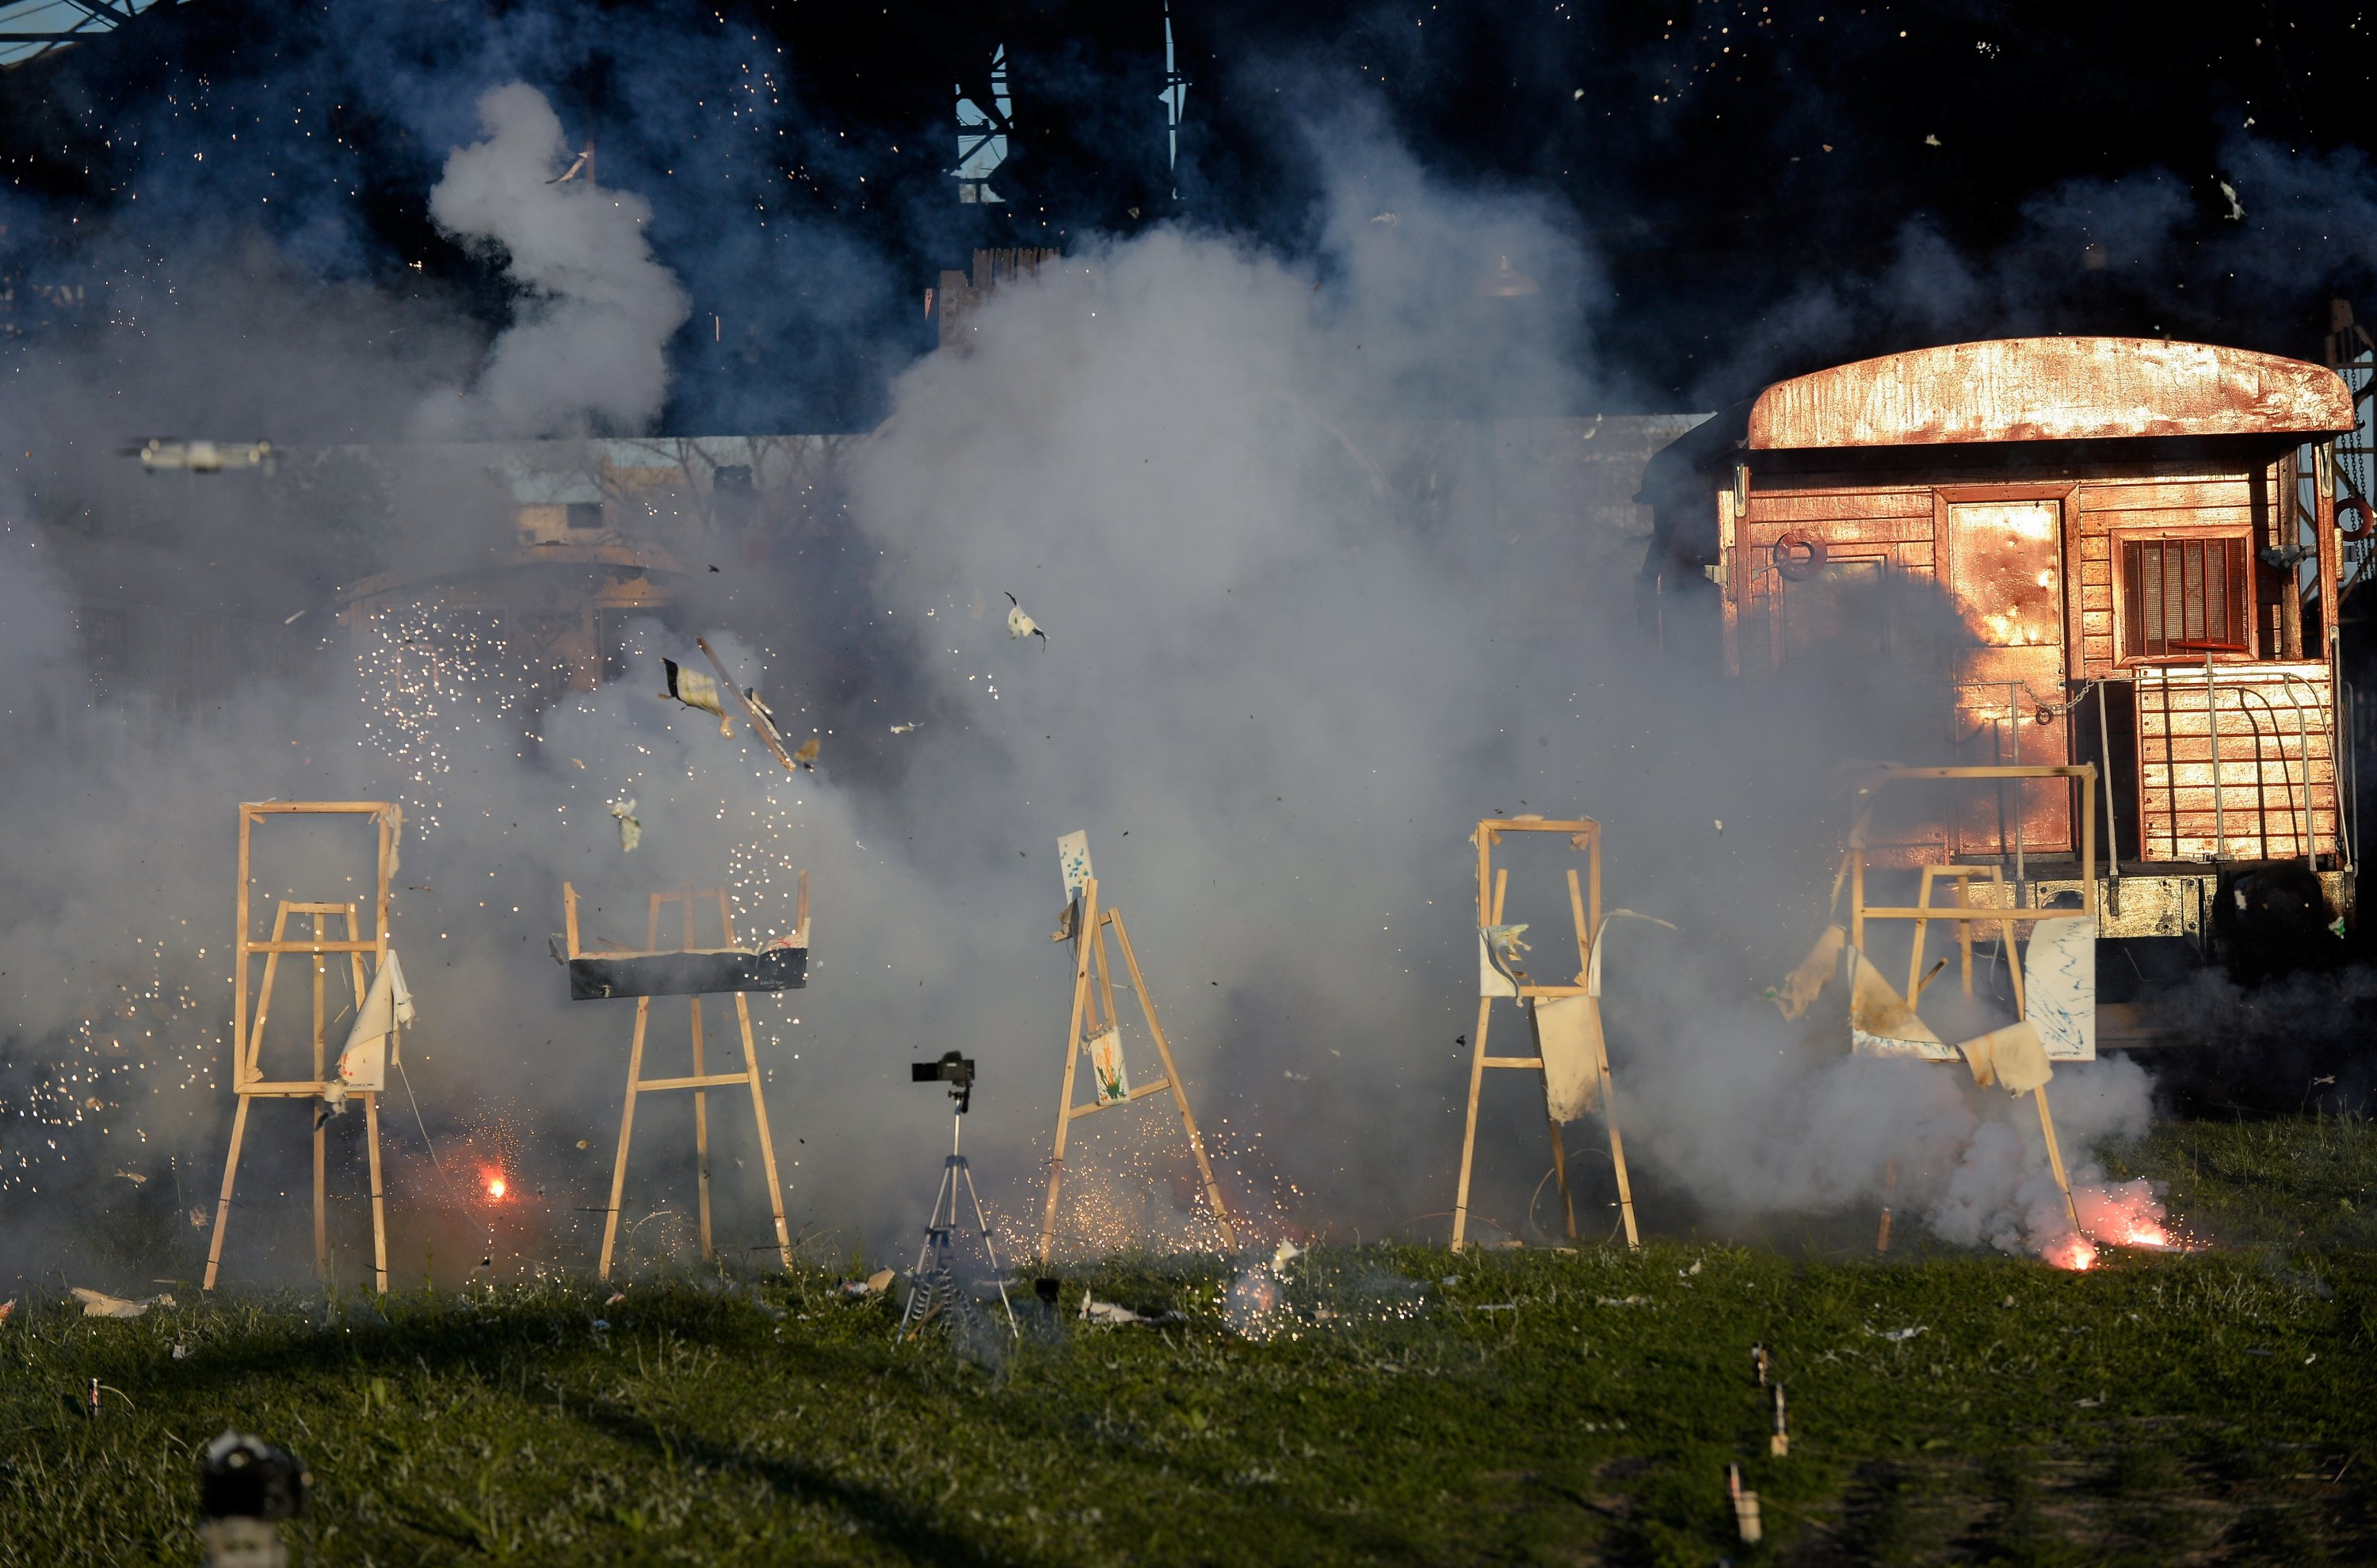 Paintings made by Argentine artist Leandro Granato with his colored tears explode, before the artist turns his work to NFT, in Buenos Aires, Argentina, Oct. 3, 2021. (REUTERS Photo)